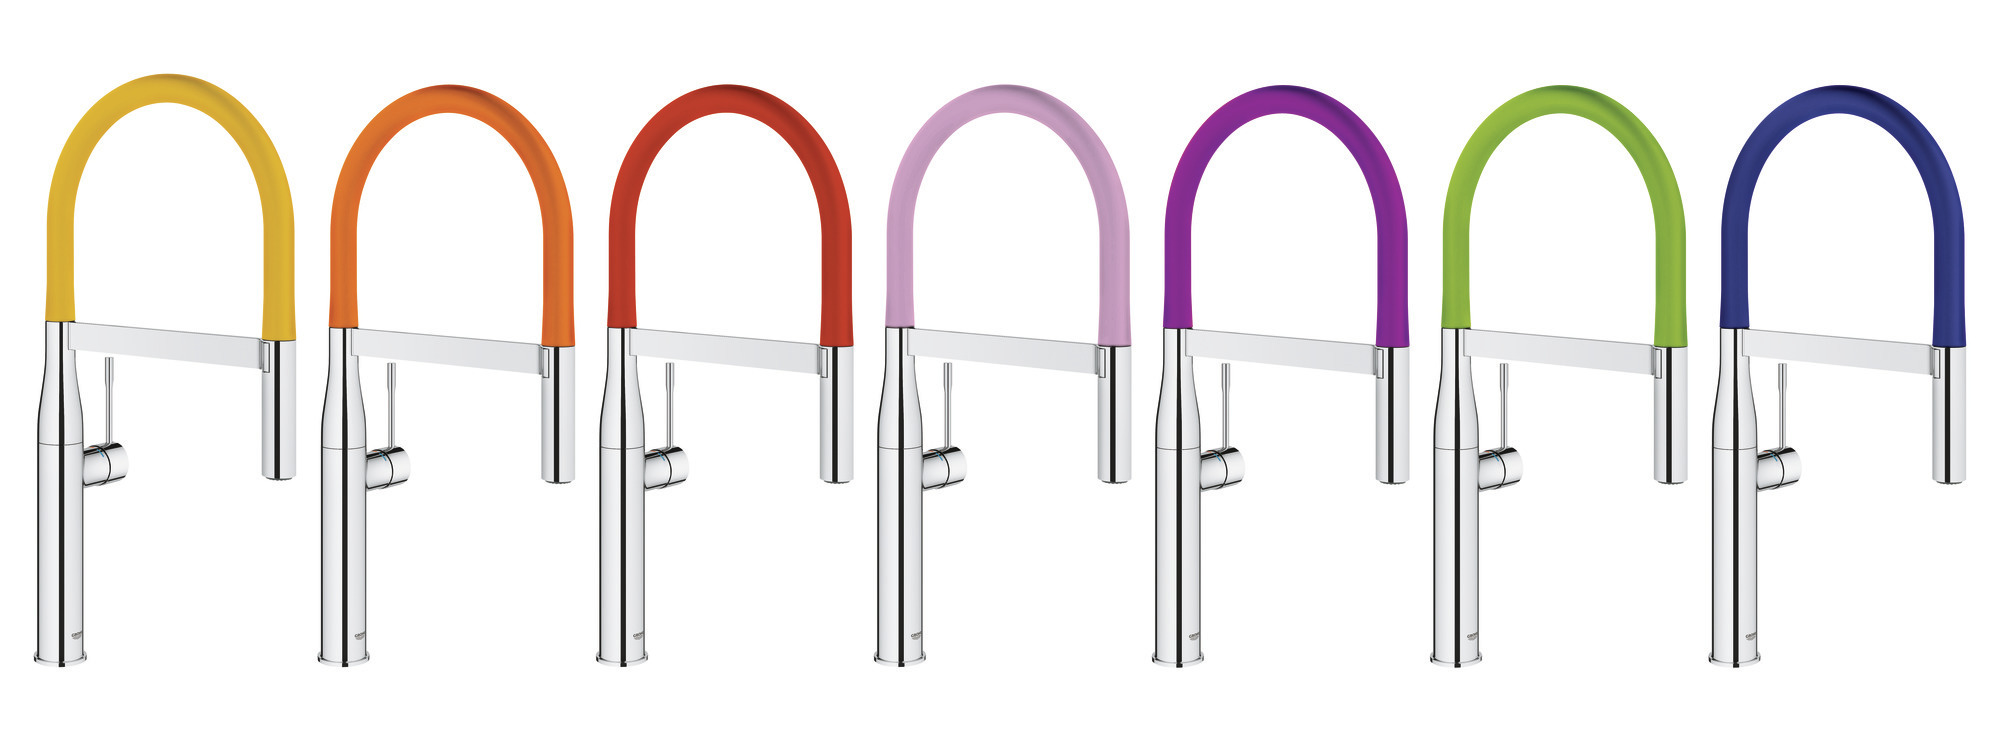 grohe launches colorful faucet collection builder. Black Bedroom Furniture Sets. Home Design Ideas